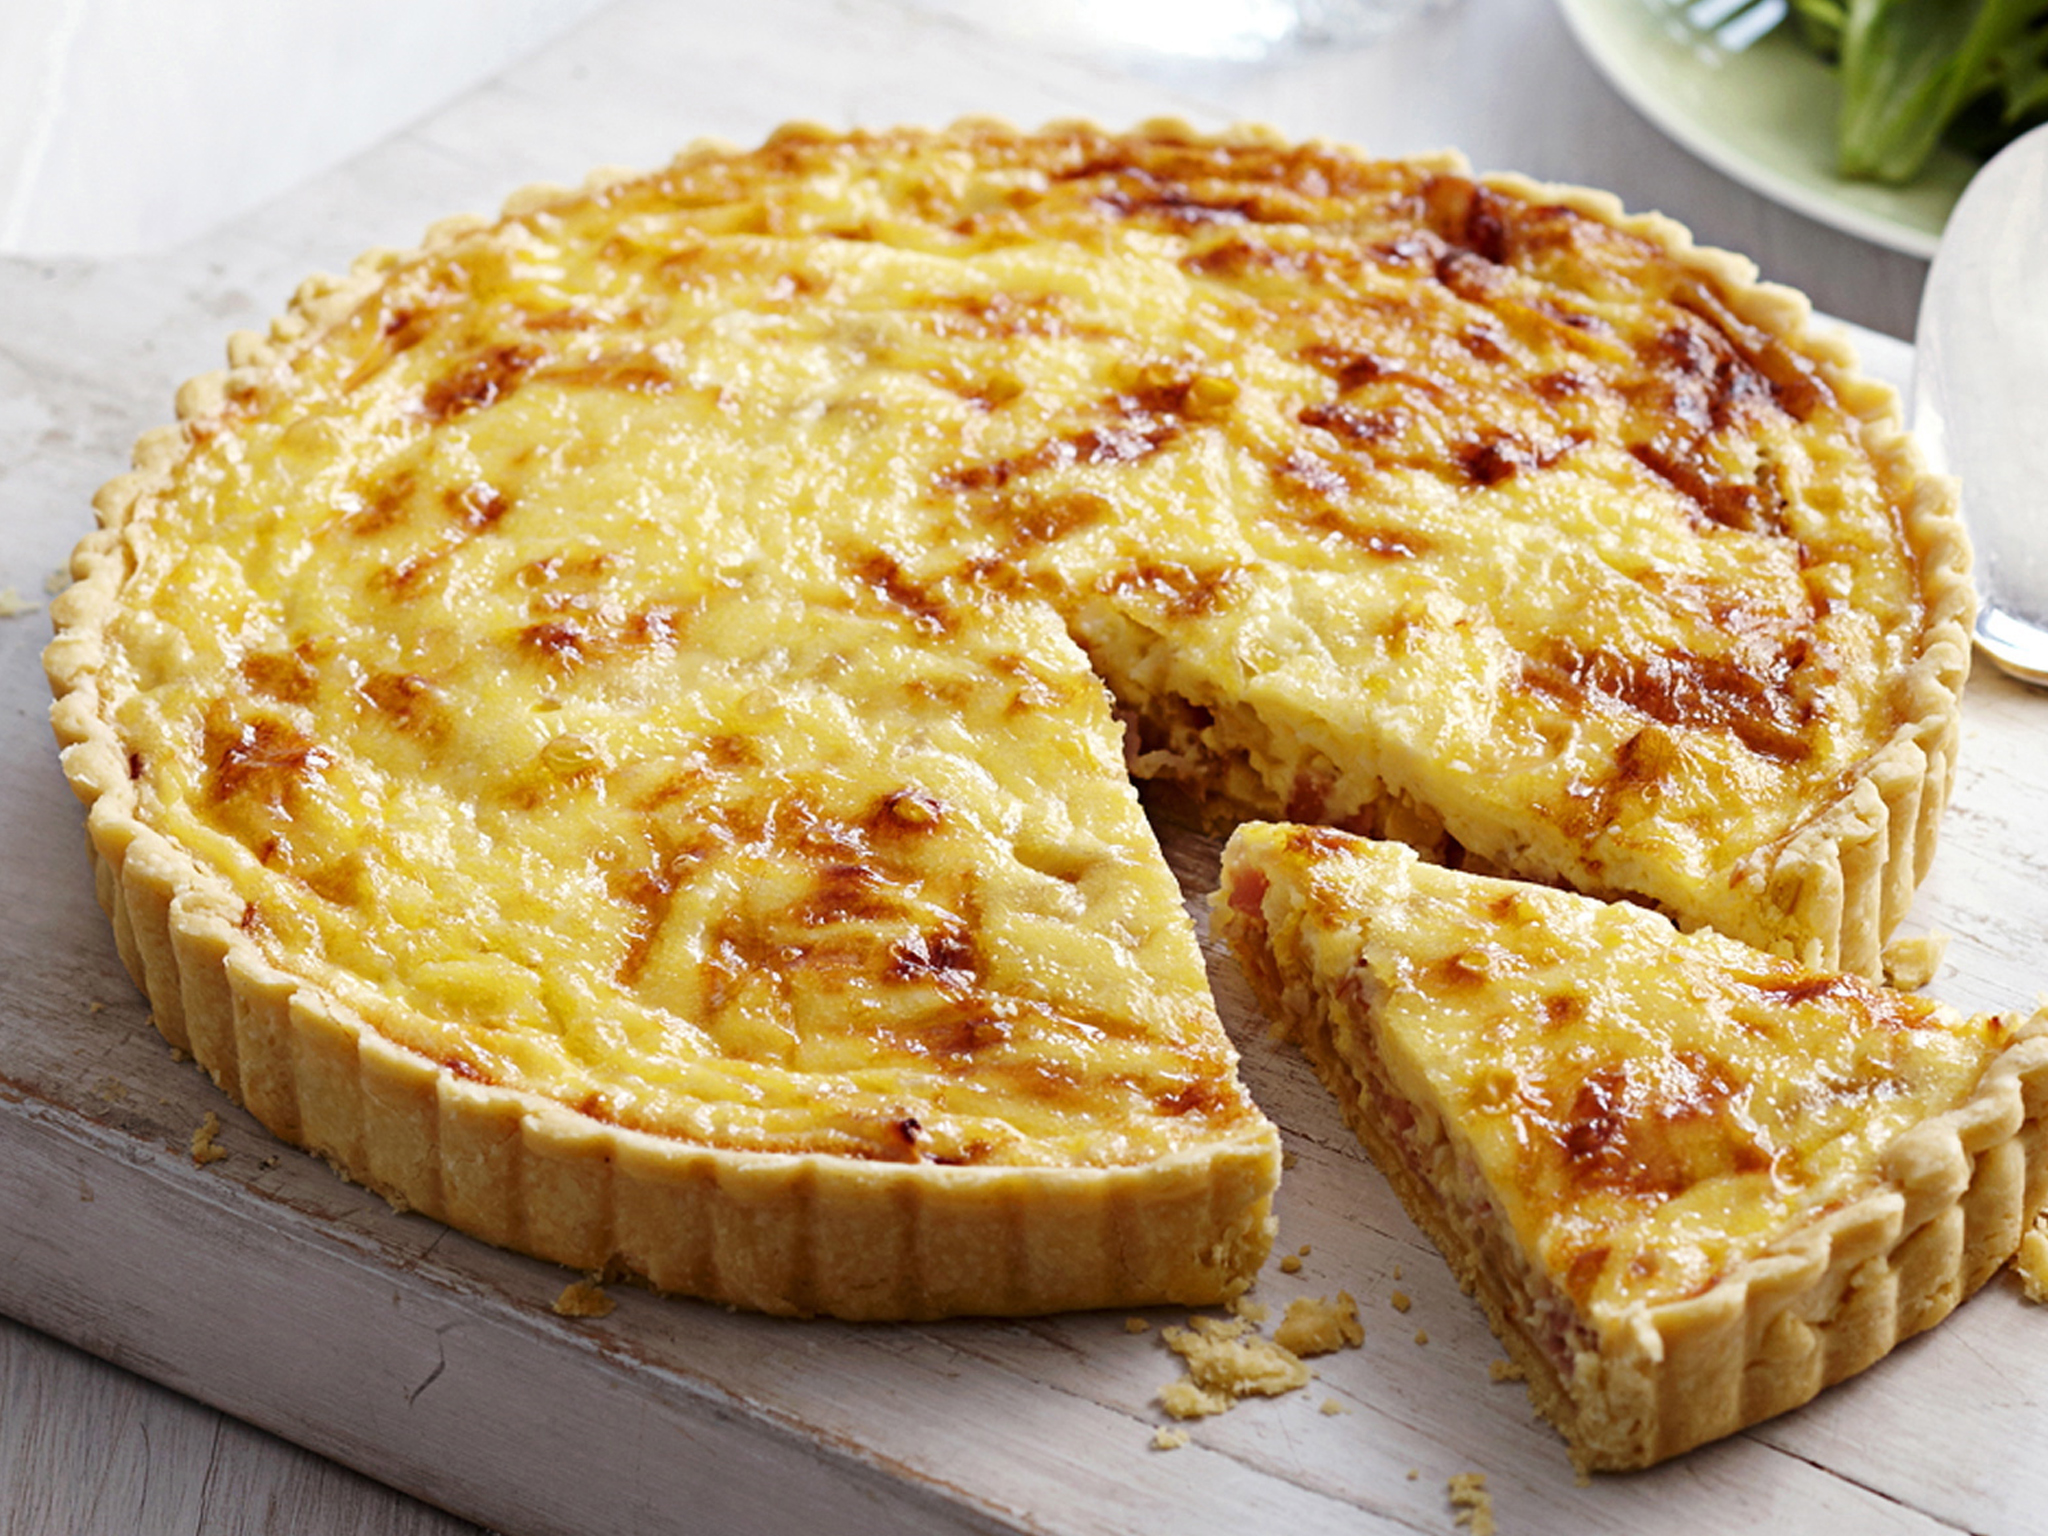 quiche lorraine recette avec ou sans pates. Black Bedroom Furniture Sets. Home Design Ideas